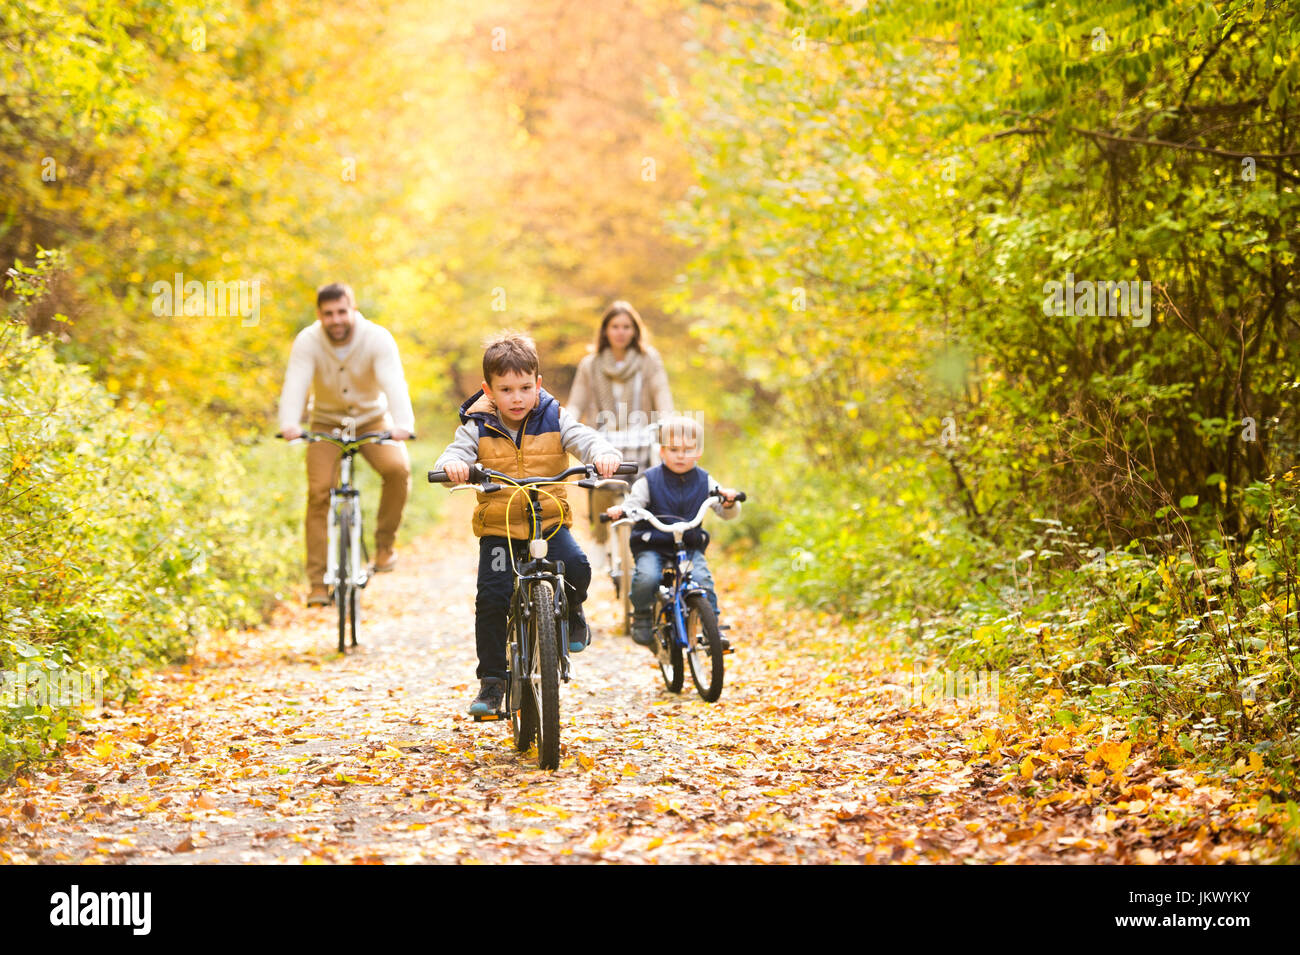 Young family in warm clothes cycling in autumn park - Stock Image